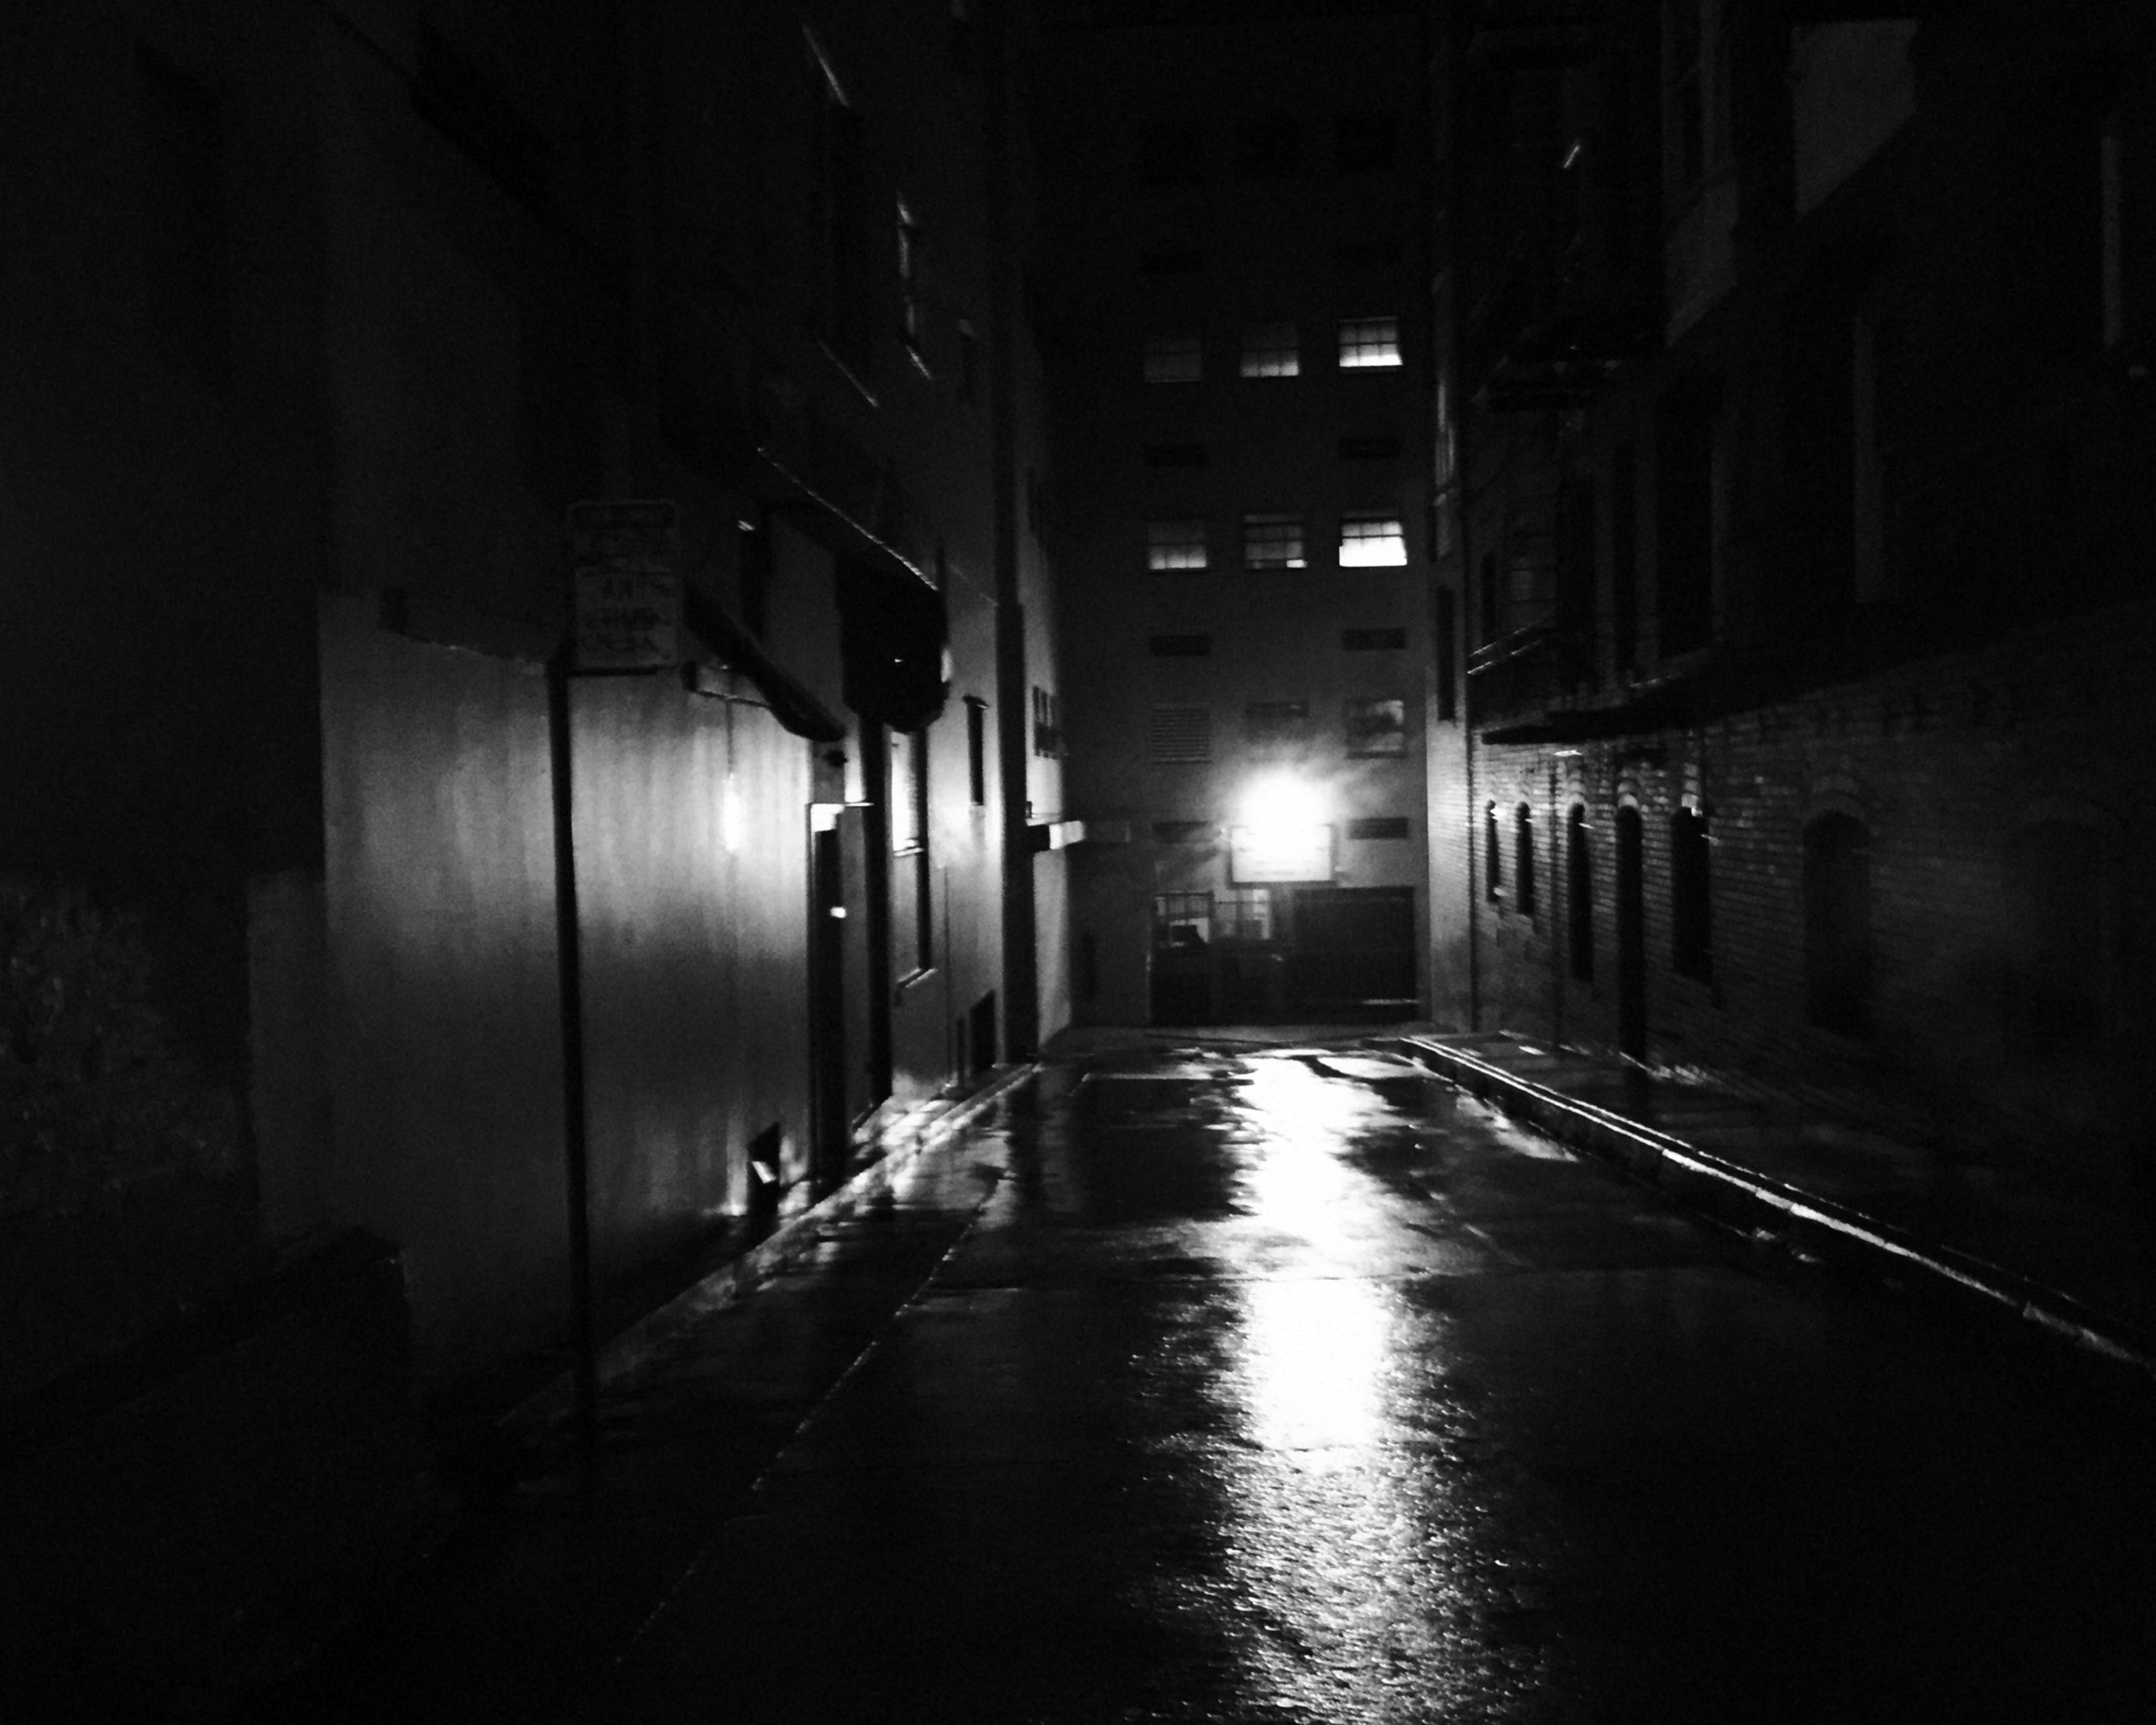 architecture, building exterior, built structure, illuminated, street, residential building, empty, road, long, street light, narrow, night, the way forward, residential structure, surface level, city, residential district, dark, outdoors, alley, town, lit, empty road, no people, old town